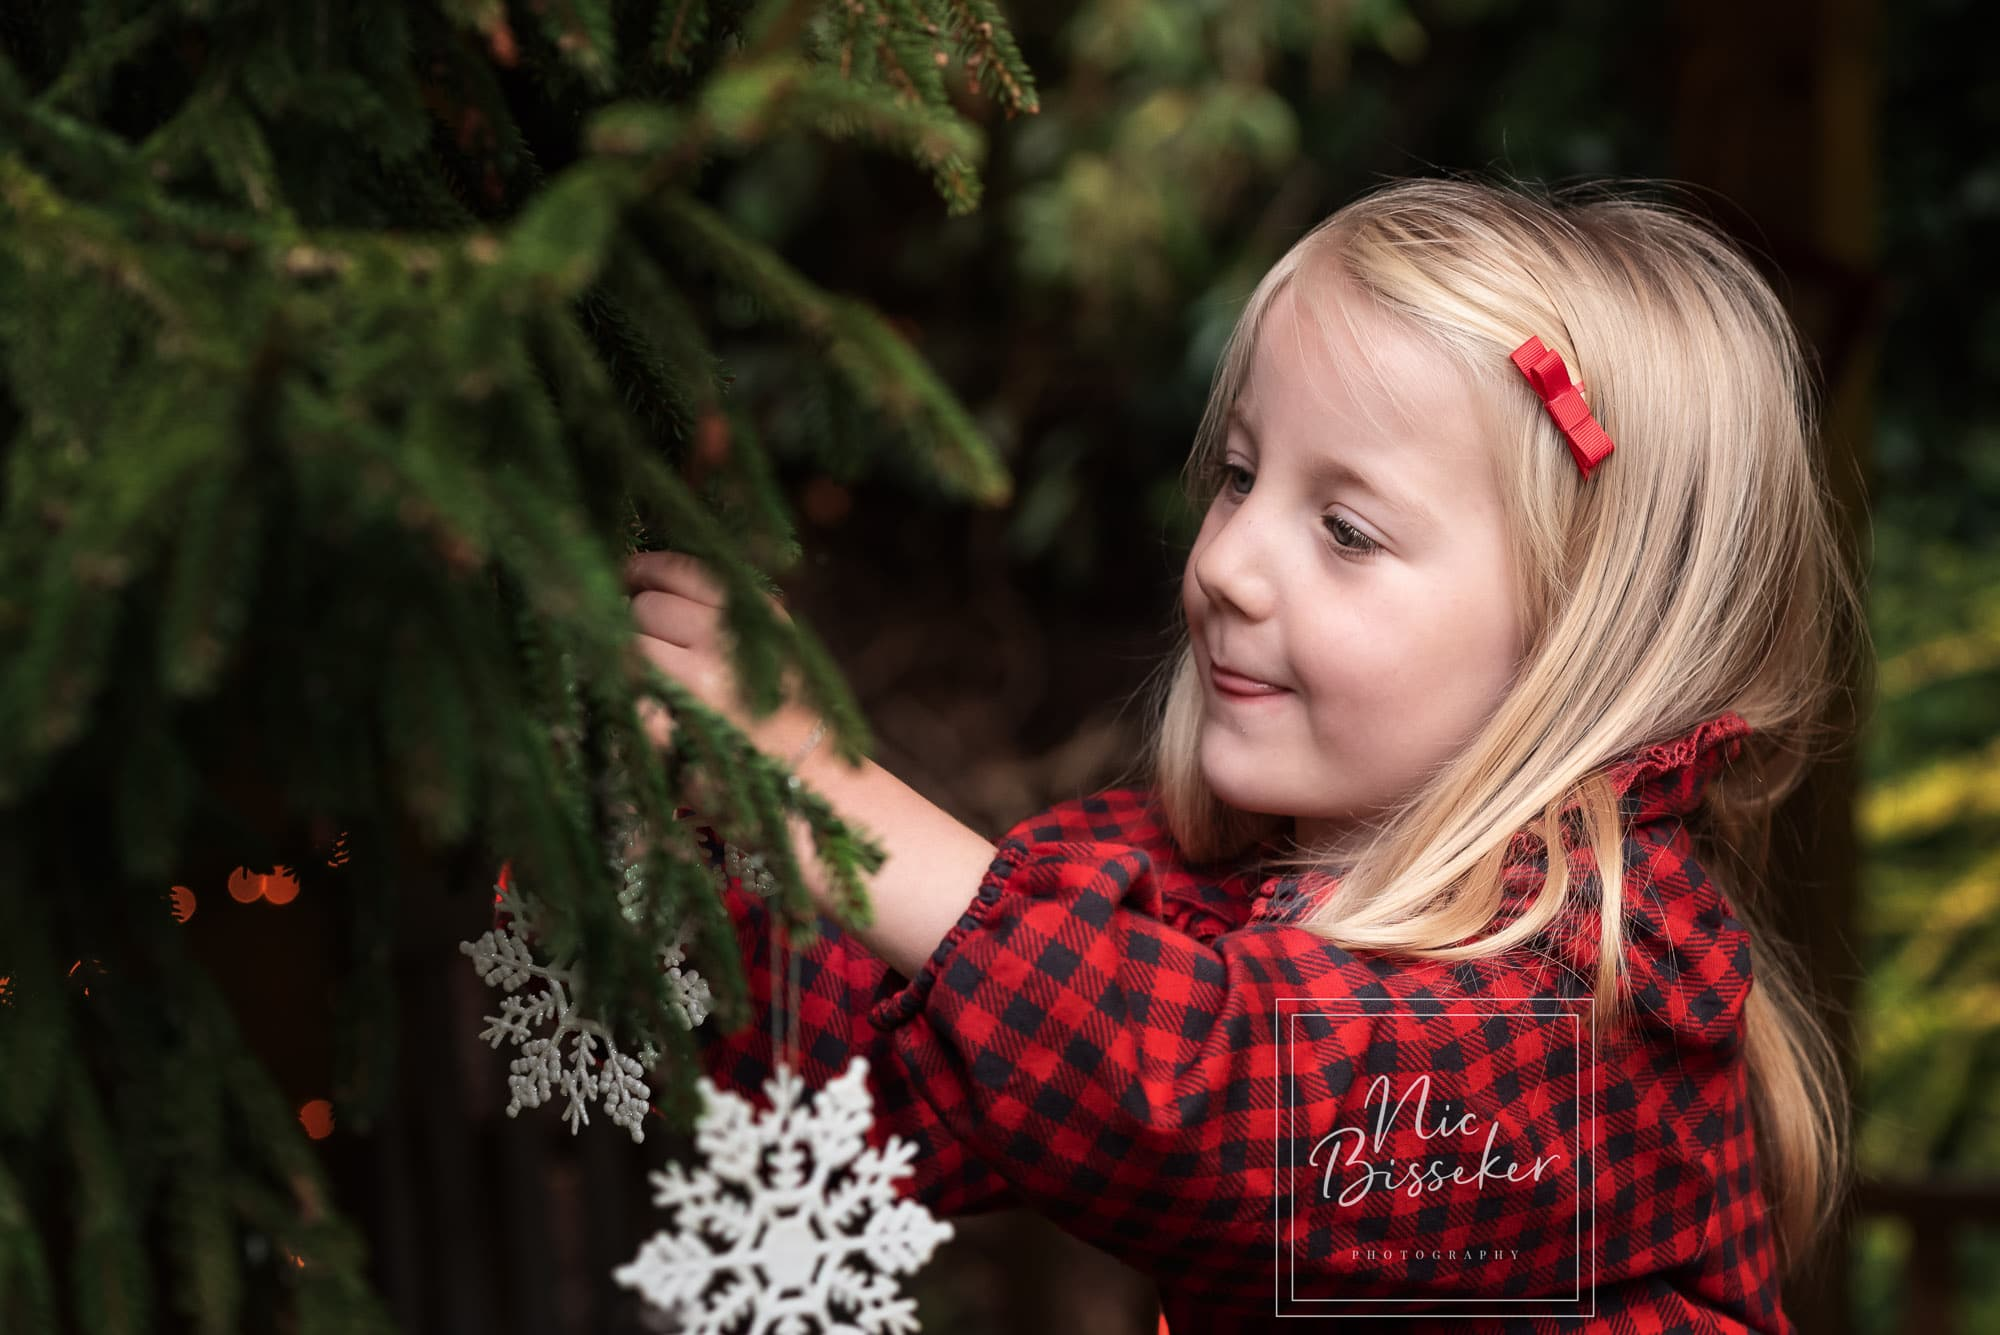 nic bisseker Photography christmas minis sessions east grinstead